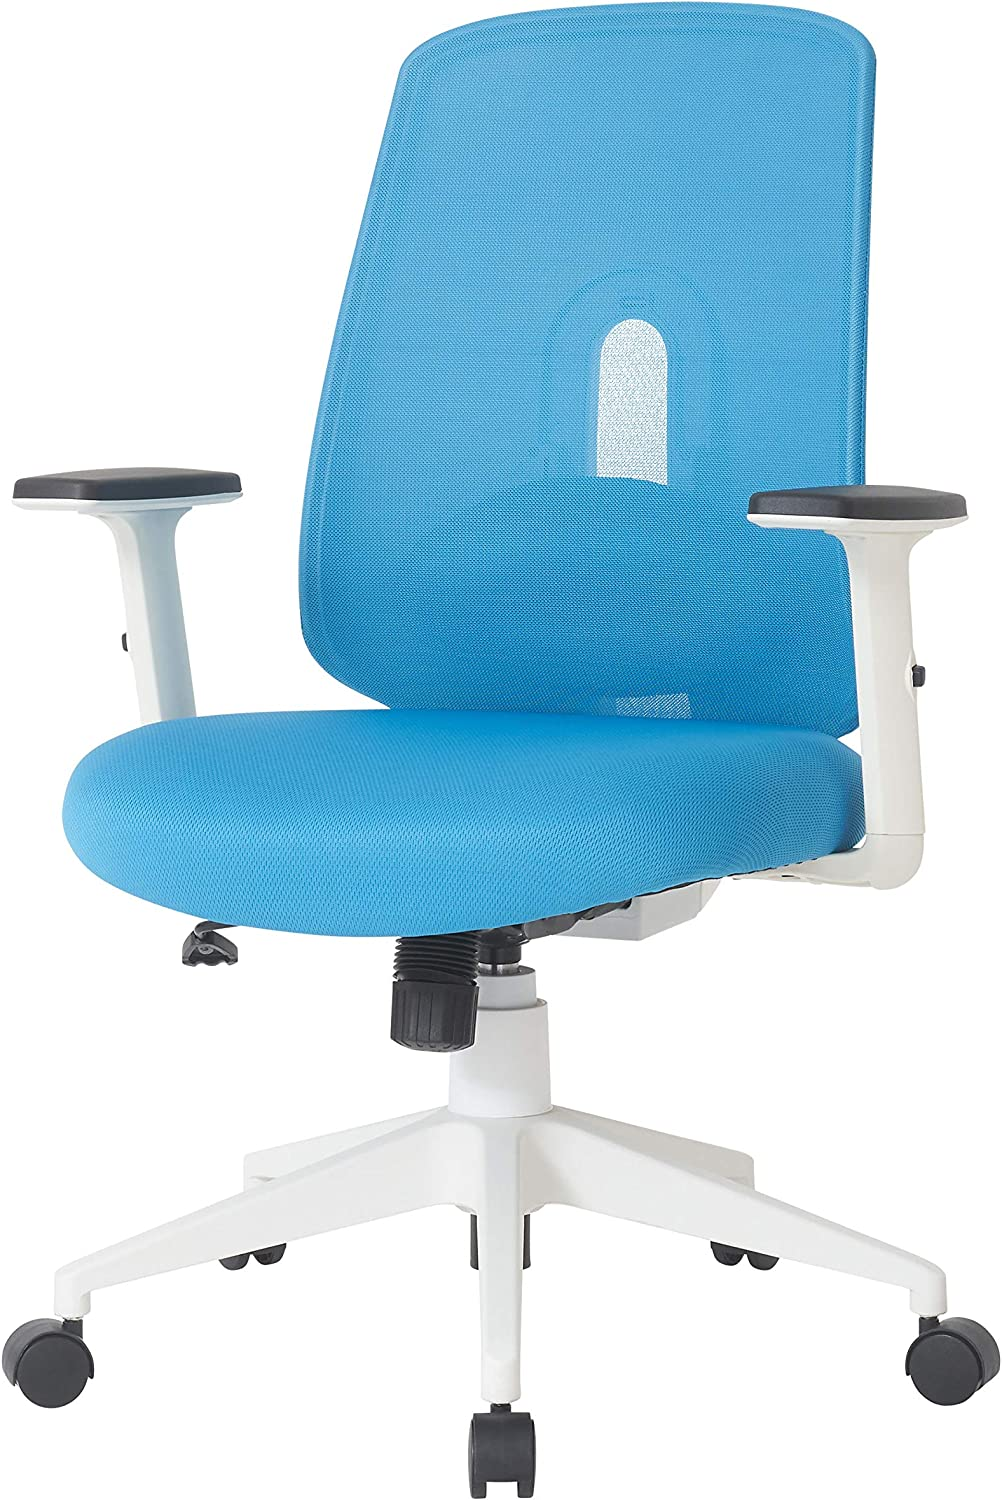 NOUHAUS Palette Ergonomic Office Chair Comfortable Swivel Computer Desk Chair, Lumbar Adjust Rolling Chair. (Blue)